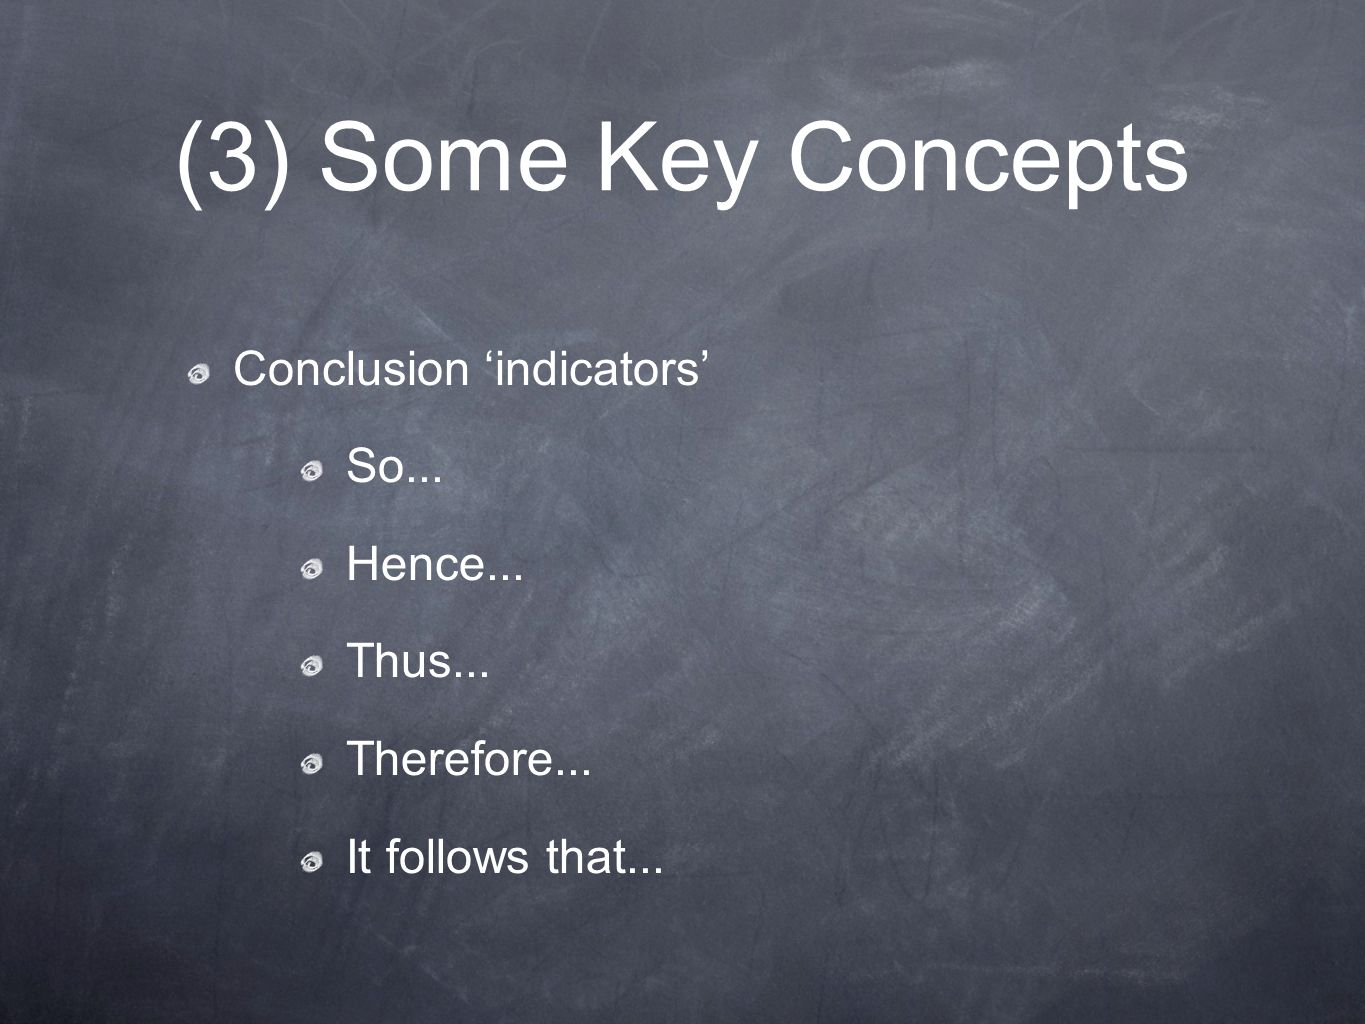 (3) Some Key Concepts Conclusion 'indicators' So... Hence... Thus...